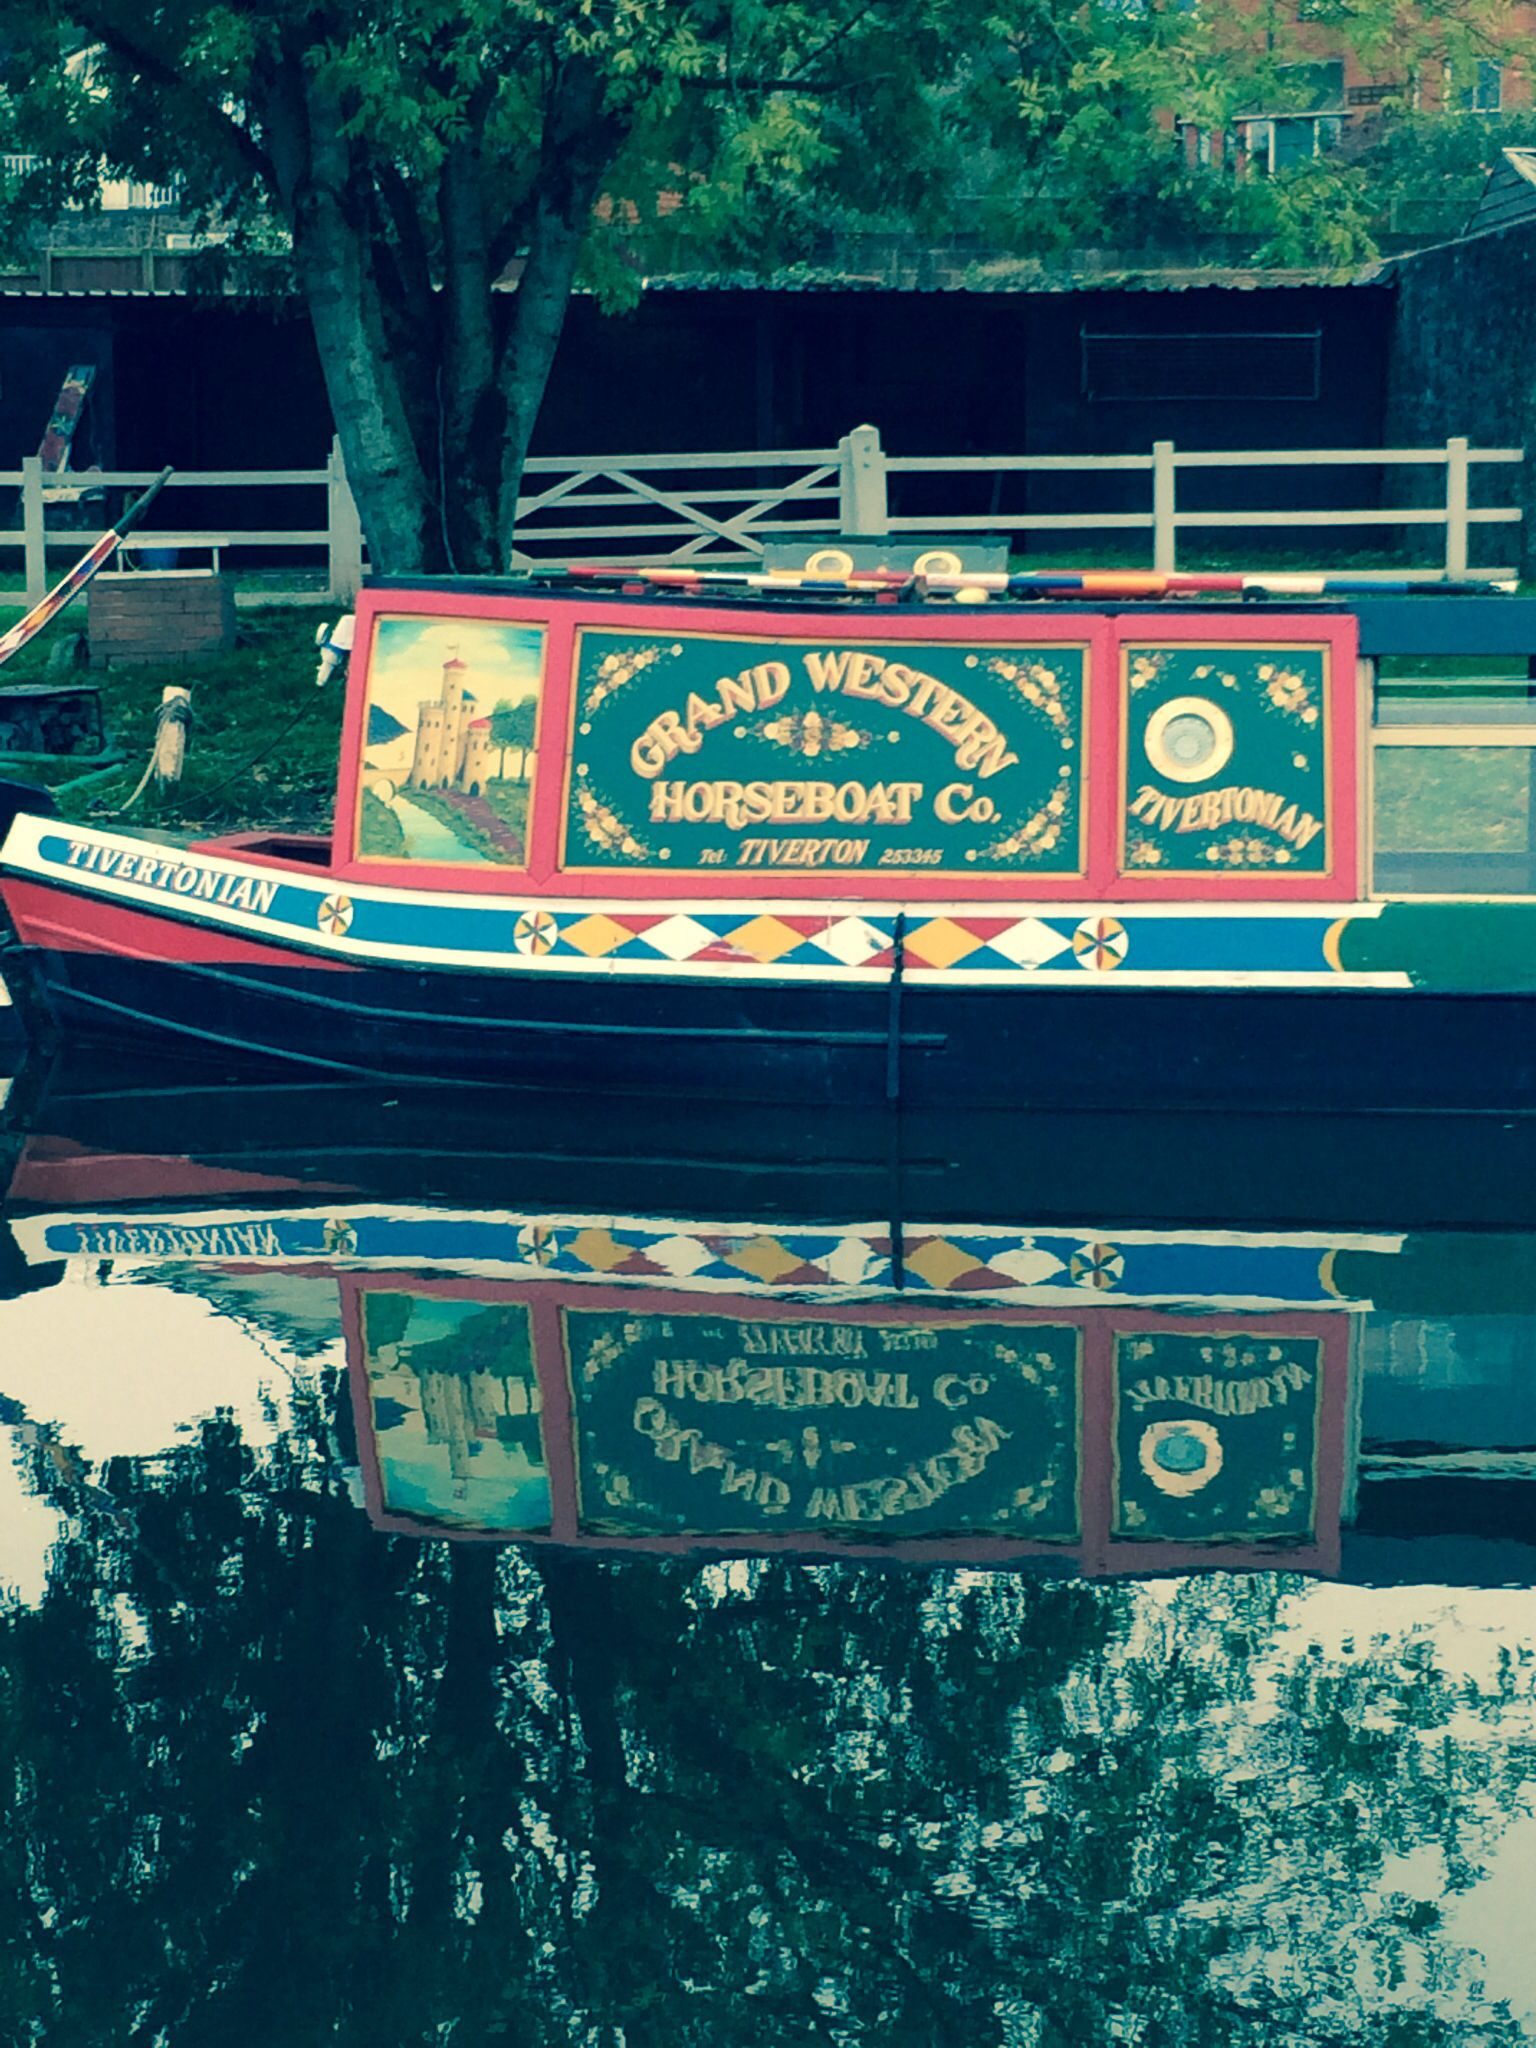 Tiverton, Devon. Reflections on the canal.